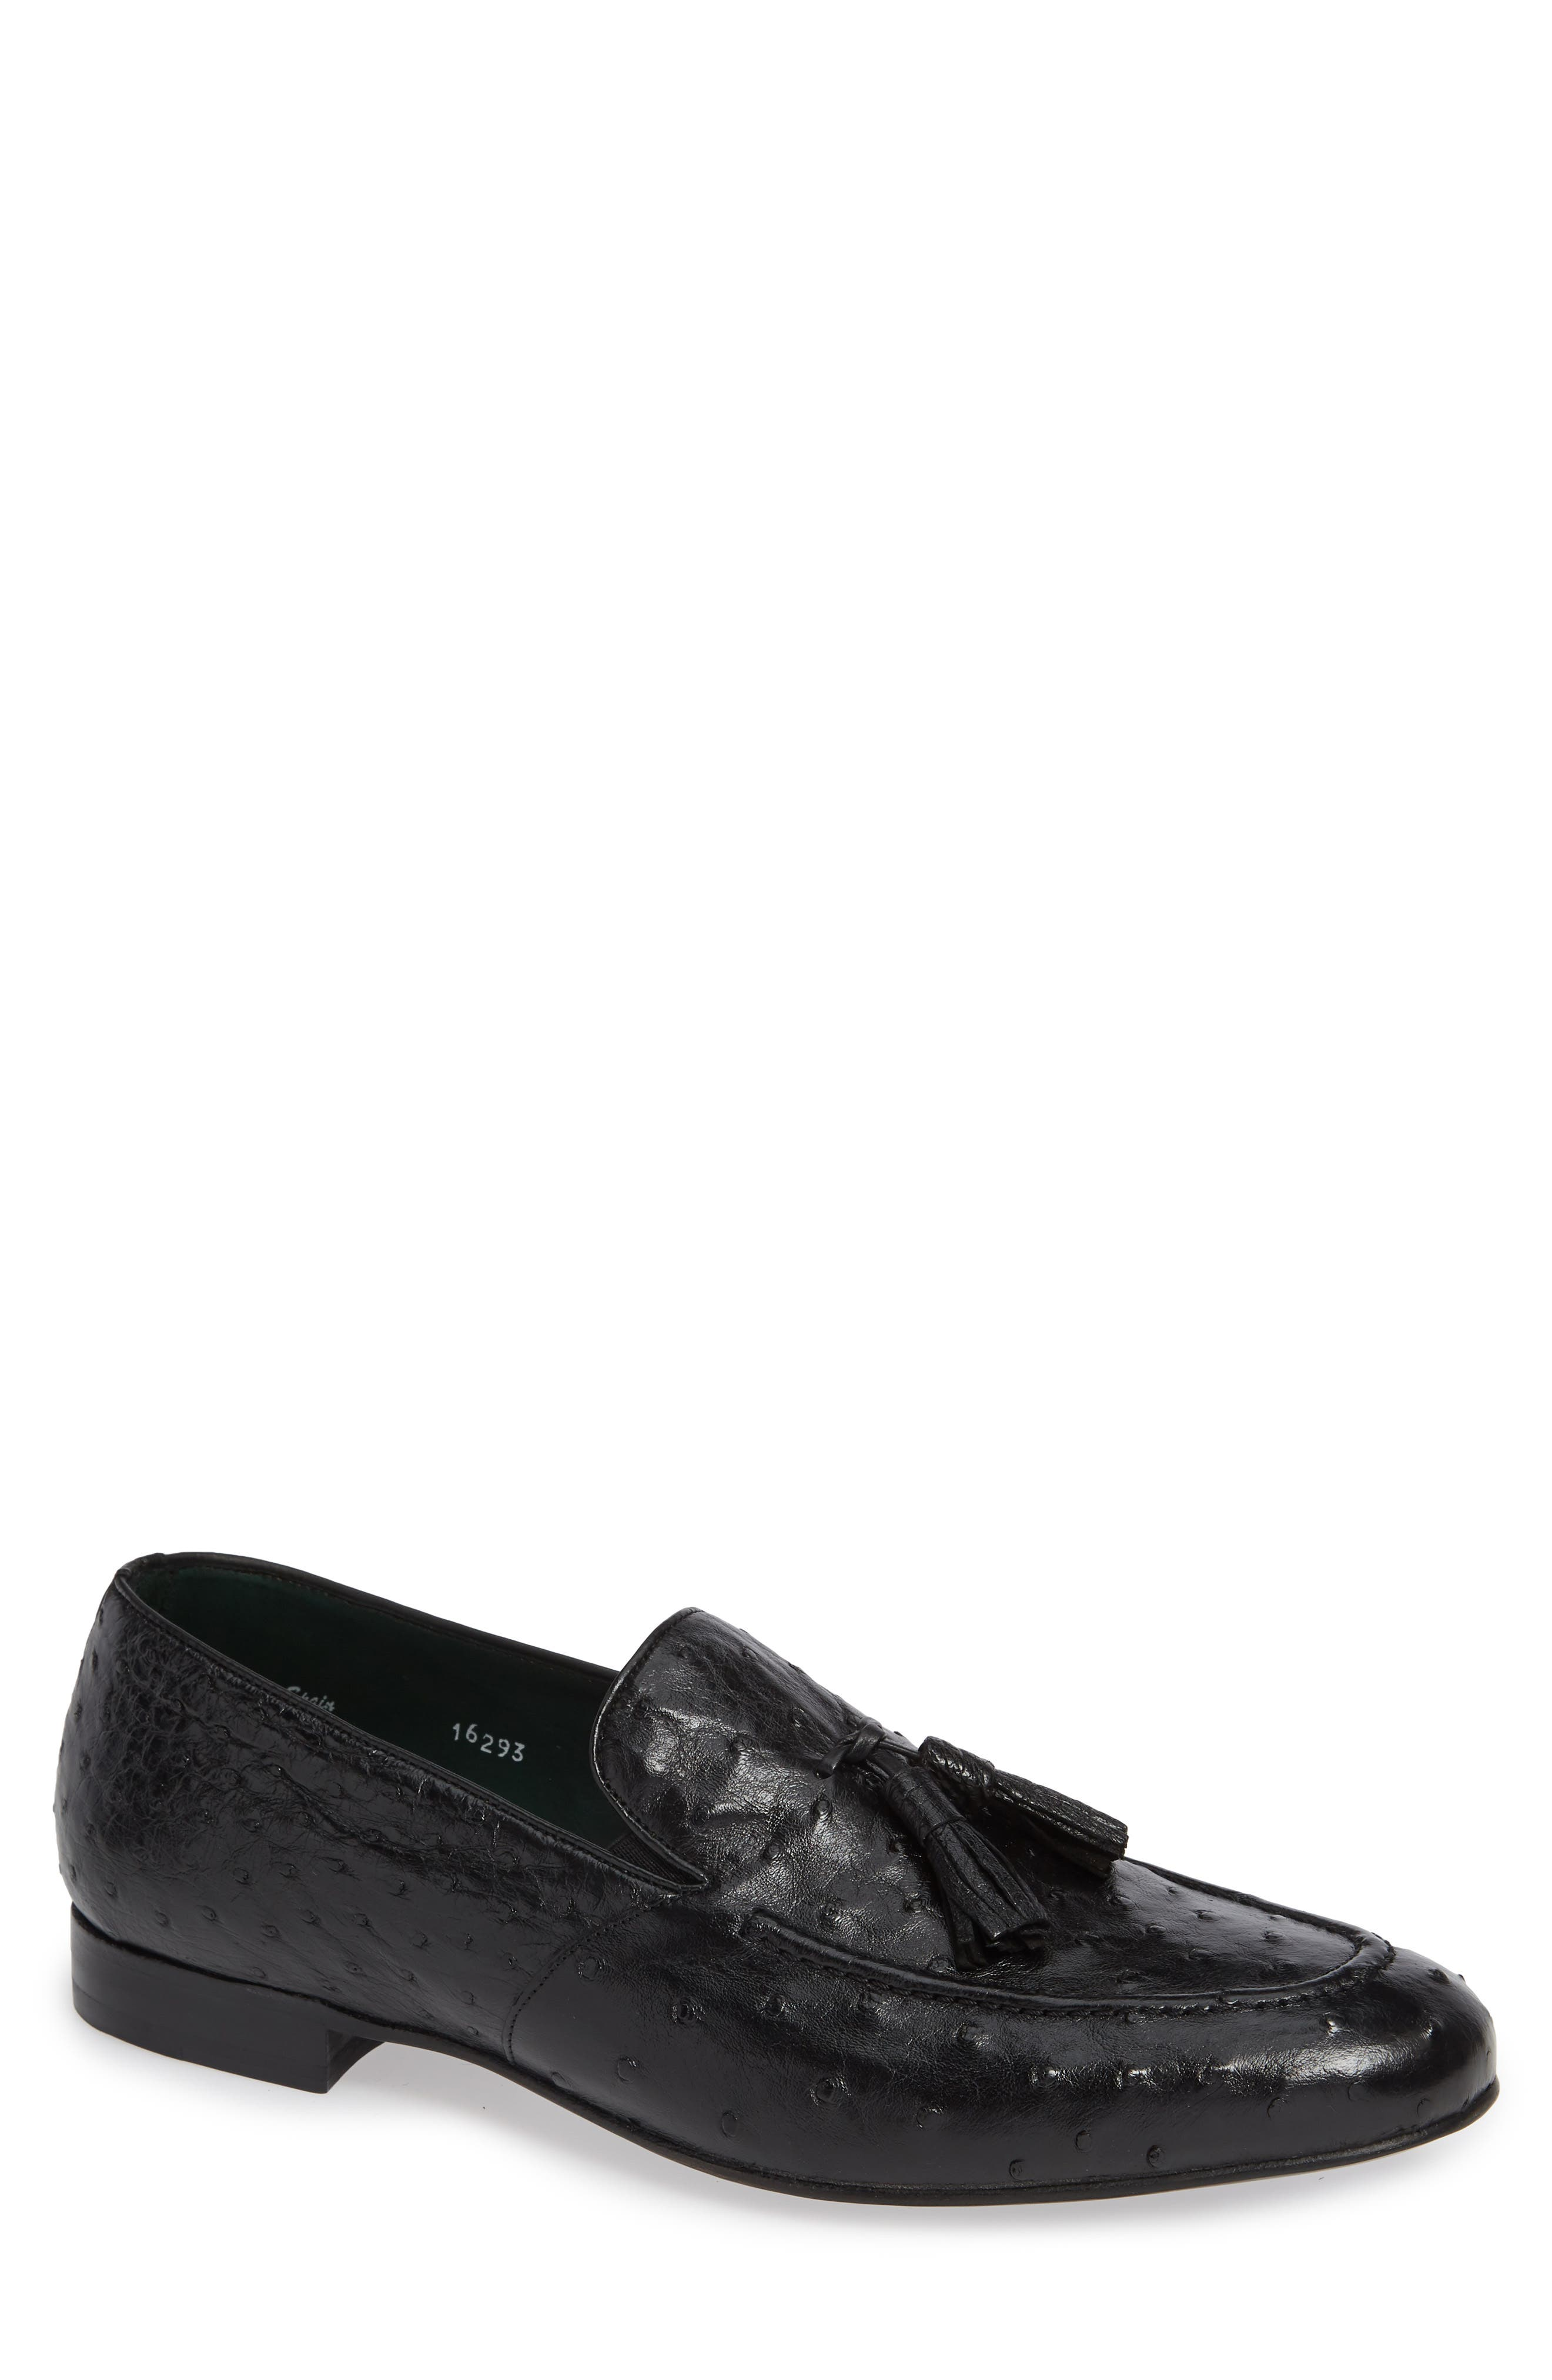 Conte Tassel Ostrich Leather Loafer,                         Main,                         color, BLACK LEATHER